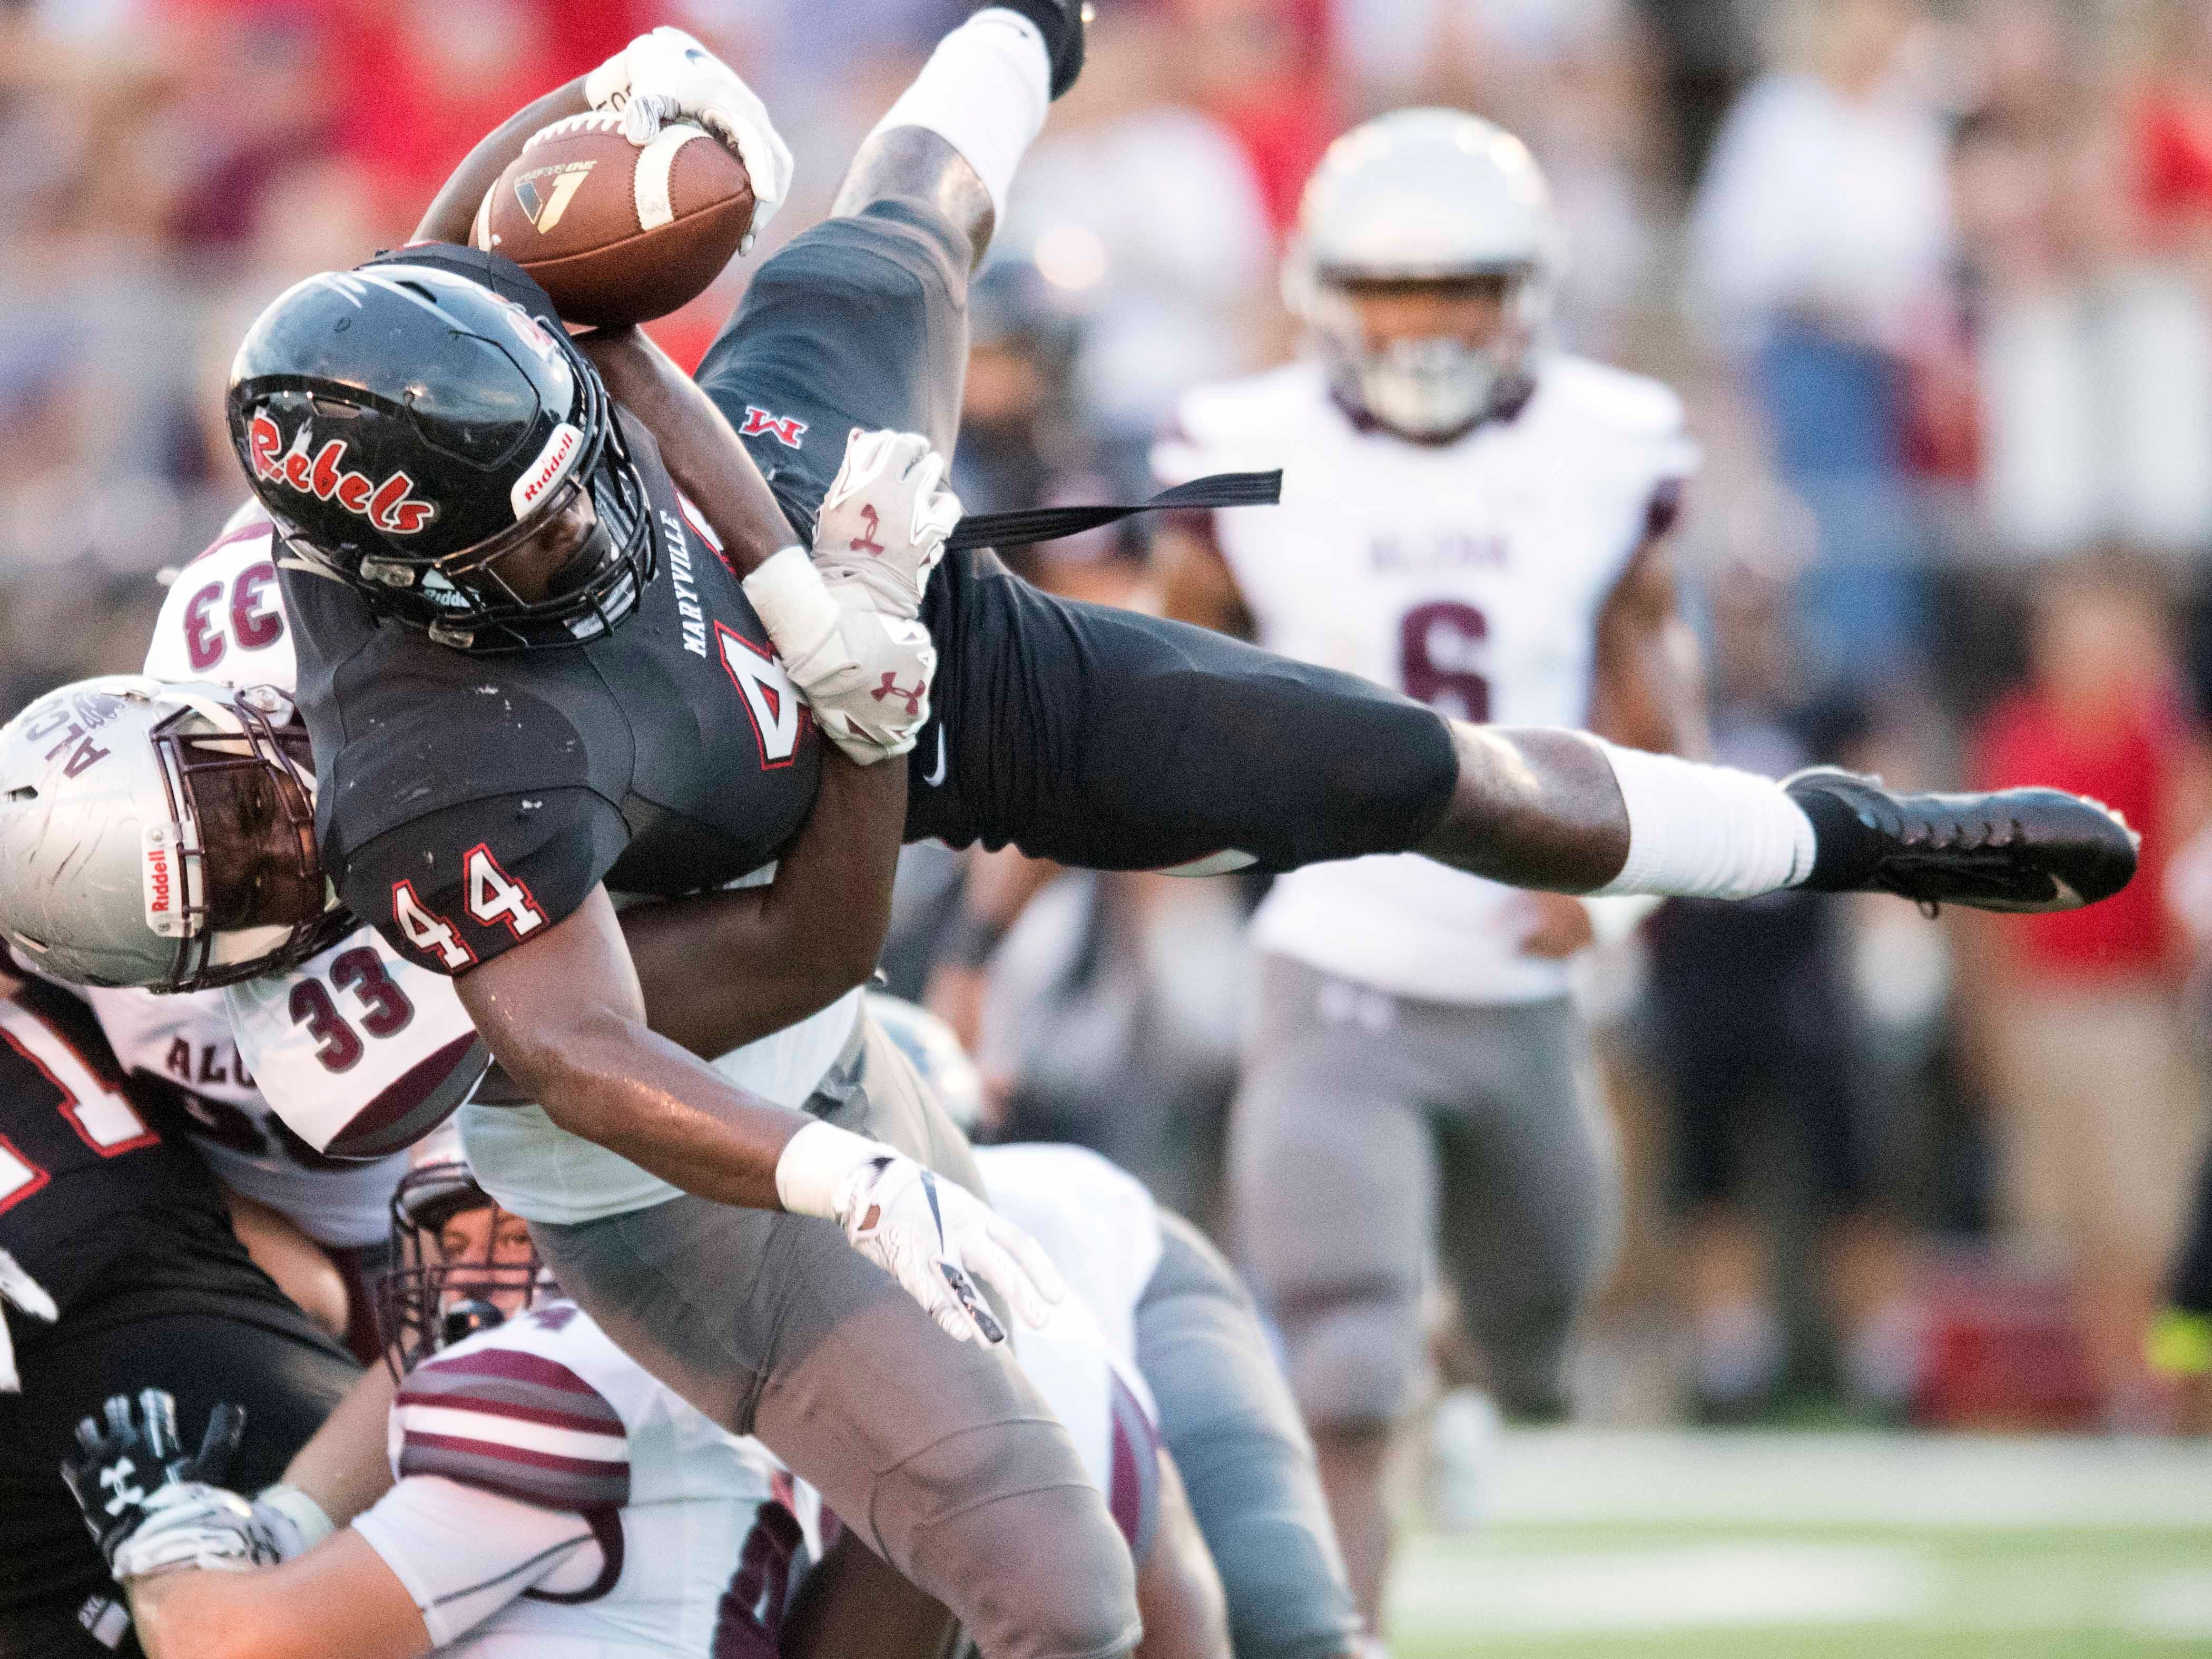 Alcoa's Adonis Salter (33) tackles Maryville's Tee Hodge (44) during the football game at Maryville on Friday, September 7, 2018.